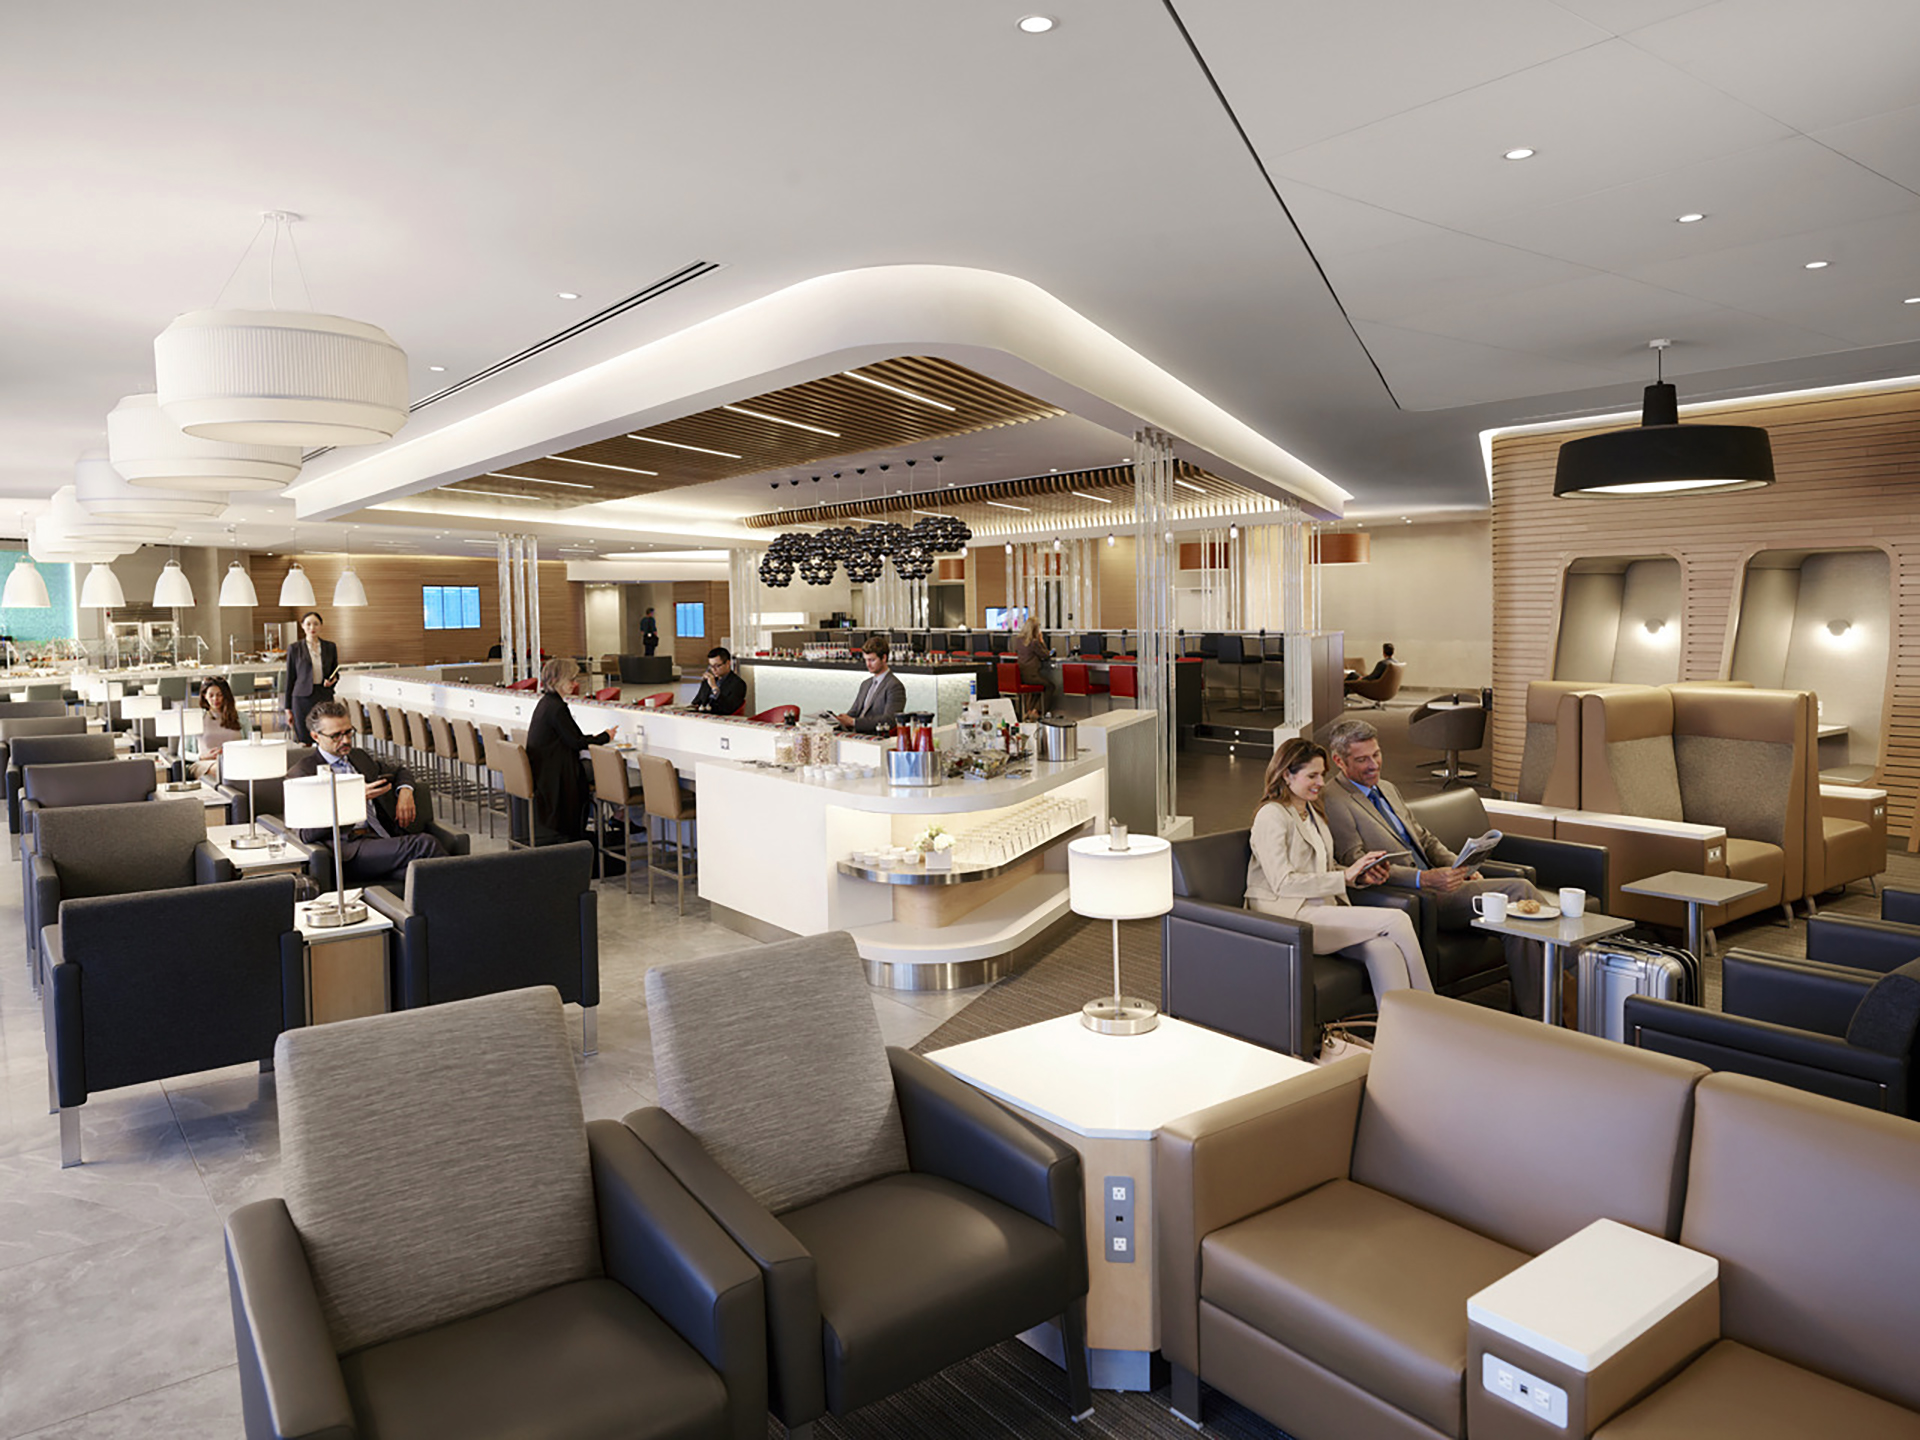 American Airlines Flagship Lounge at JFK Airport